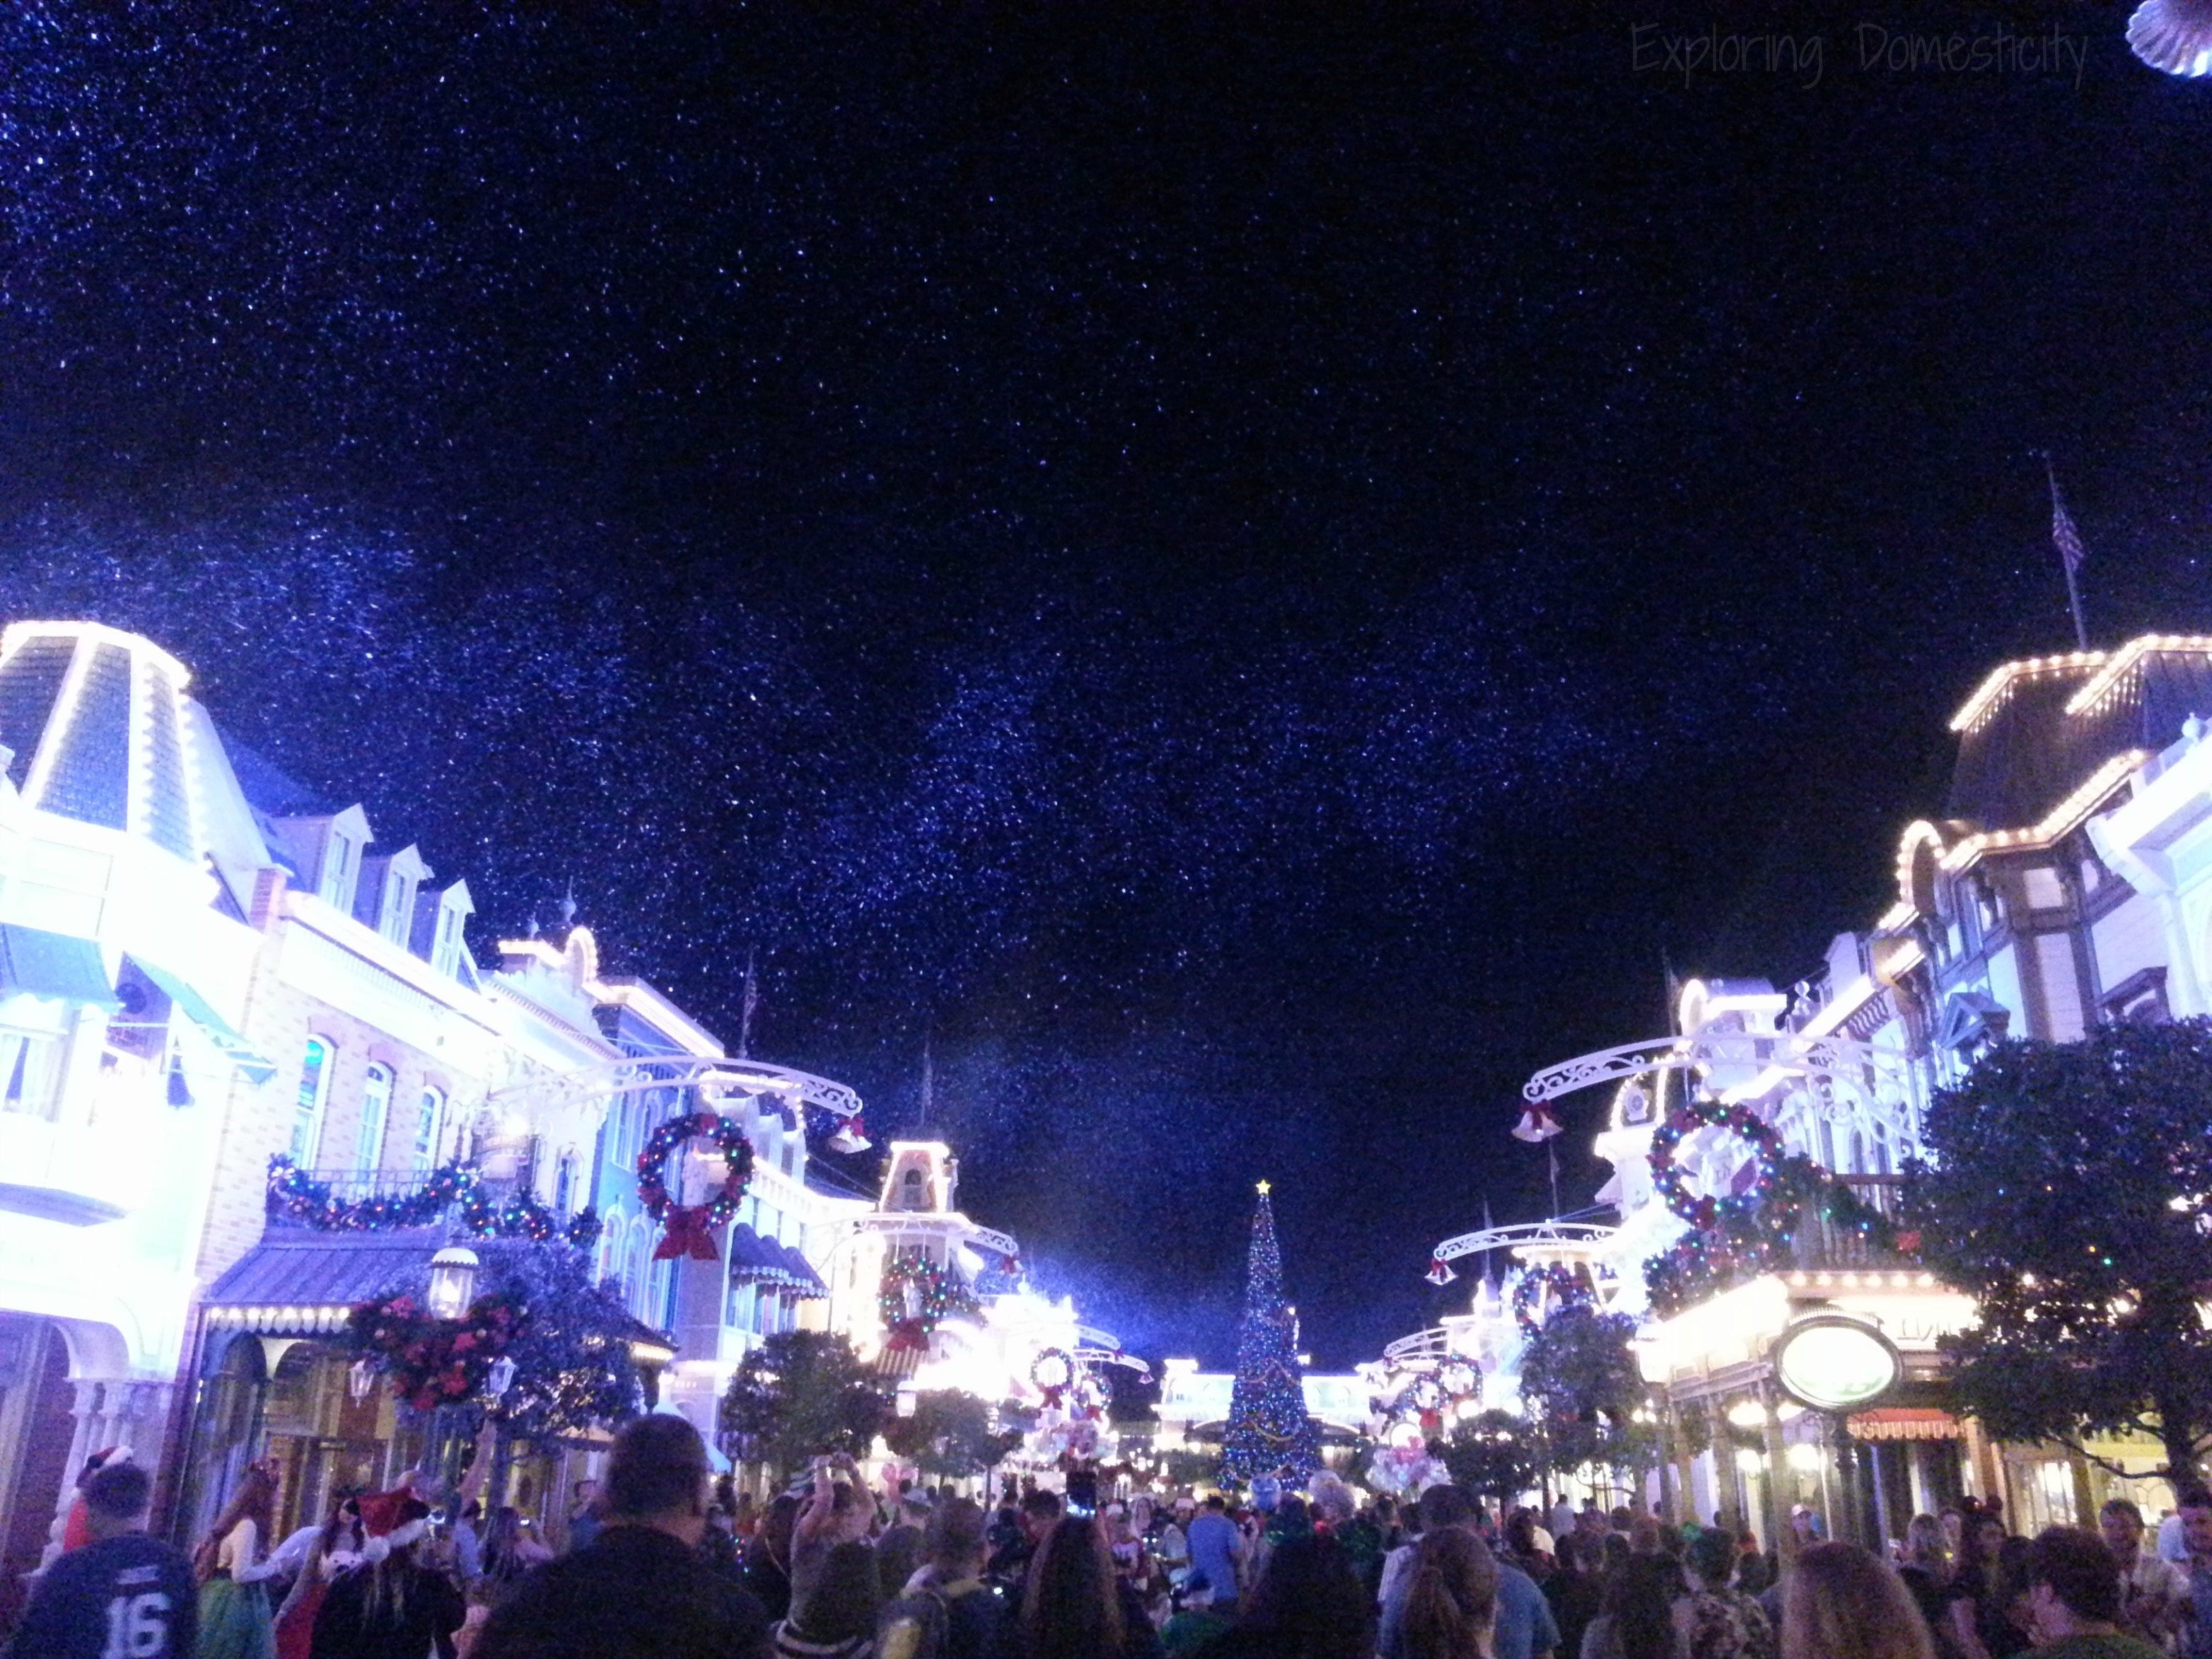 walt disney world during christmas mickeys very merry christmas party with snow on main street - Disney During Christmas